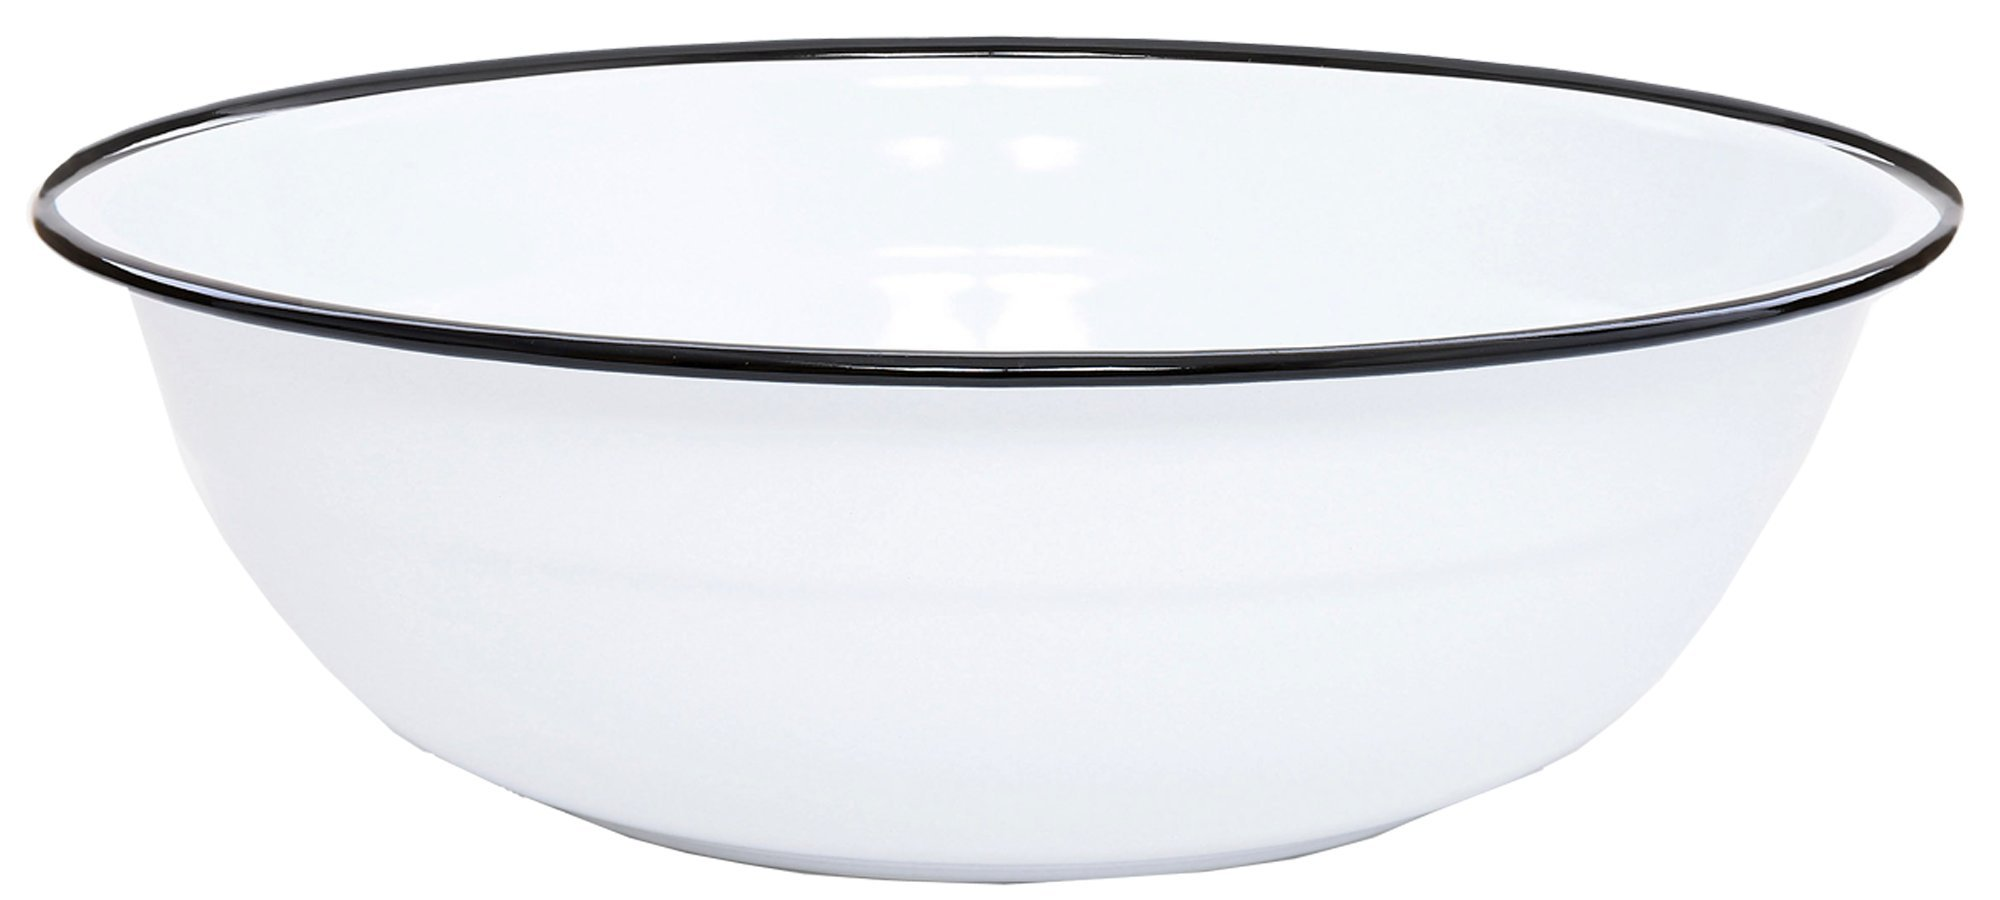 Enamelware Basin, 8 quart, Vintage White/Black